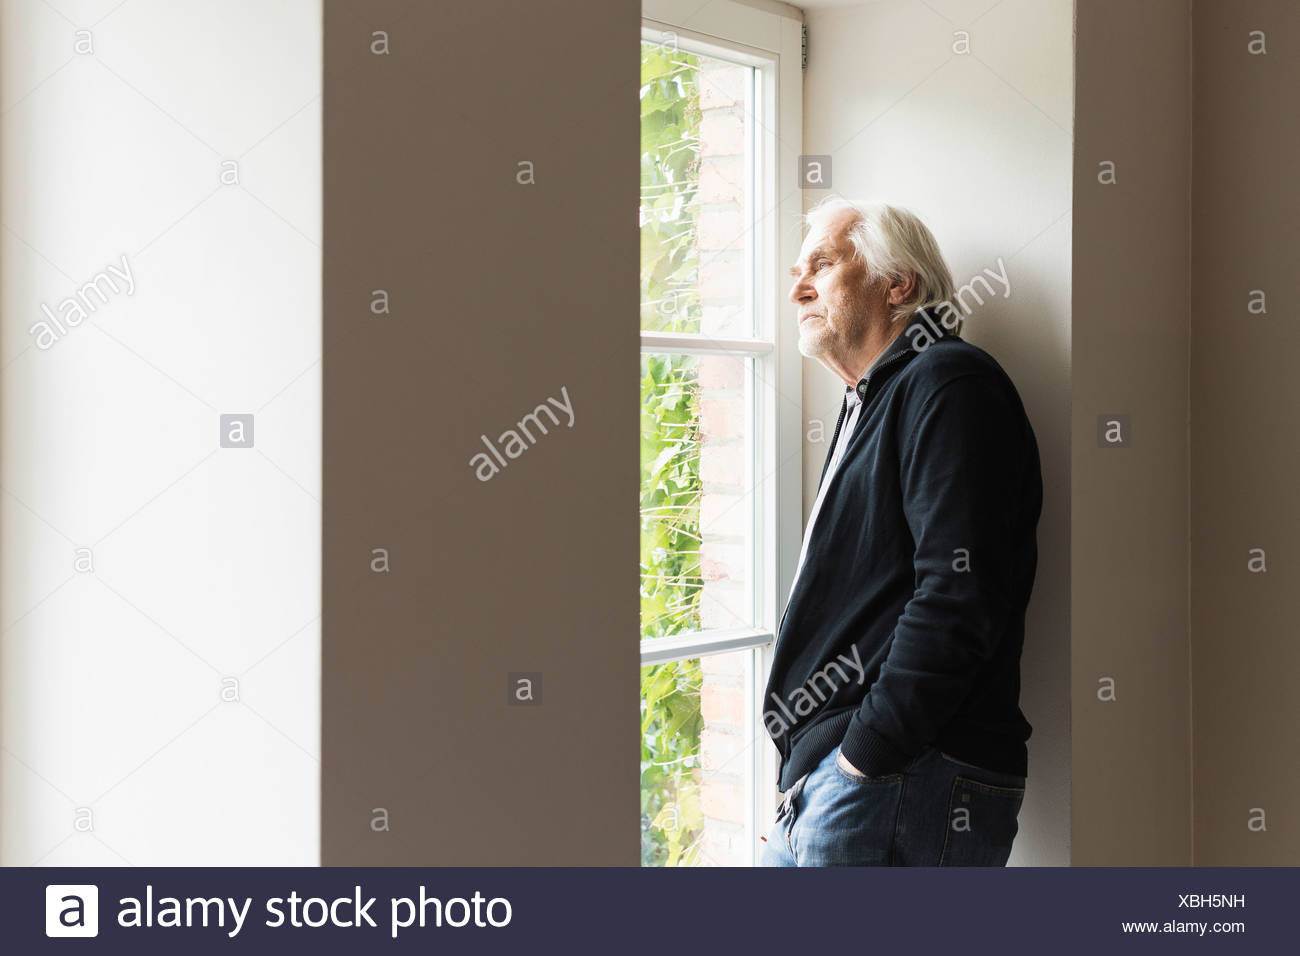 Portrait of senior man looking out of window - Stock Image